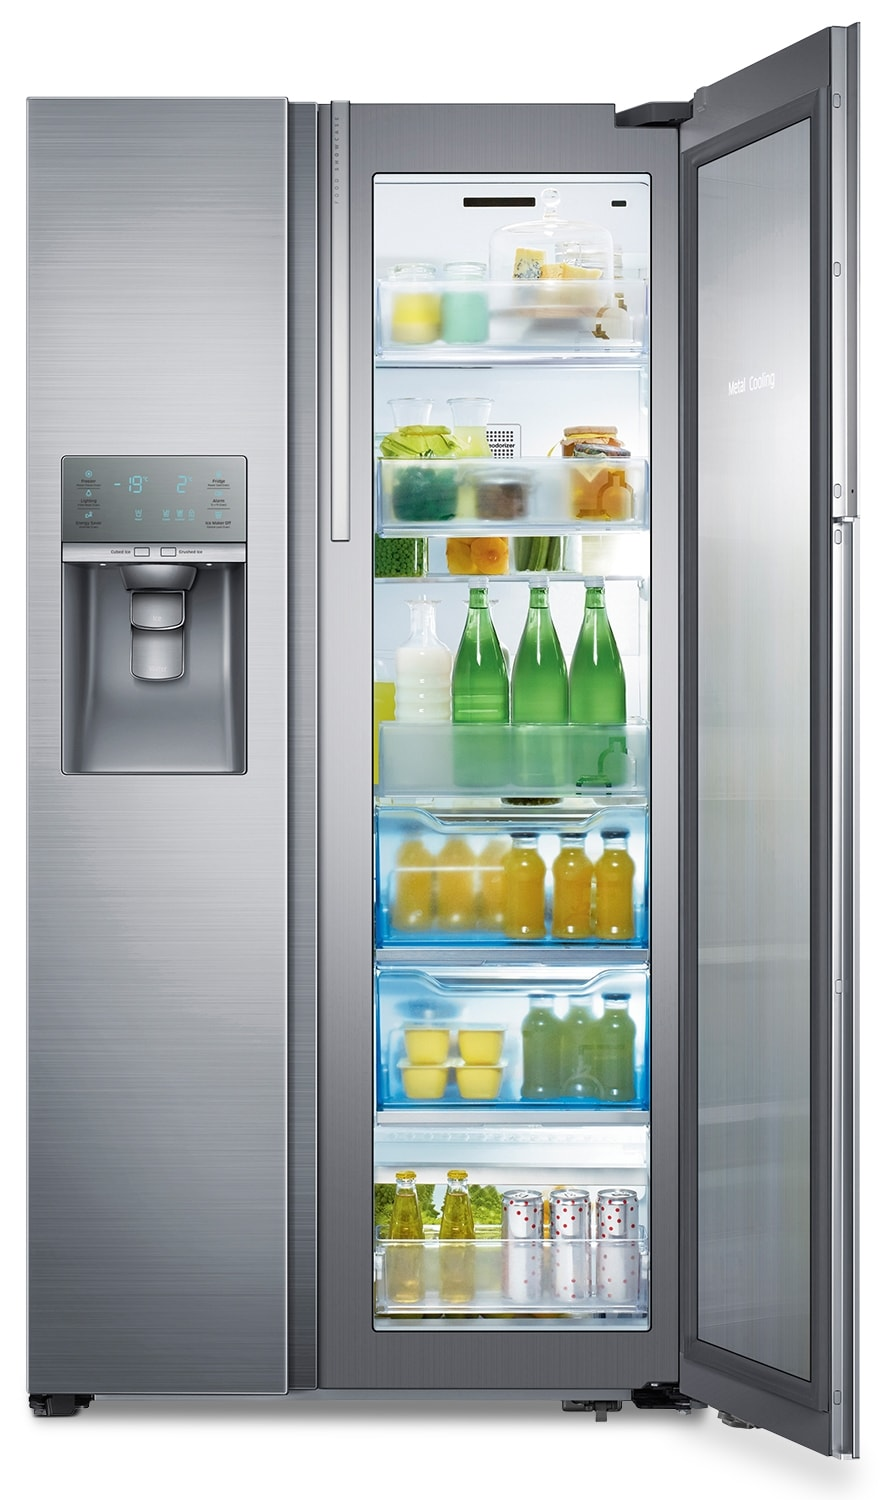 Refrigerators and Freezers - Samsung 21.5 Cu. Ft Side-by-Side Food Showcase Refrigerator – Stainless Steel